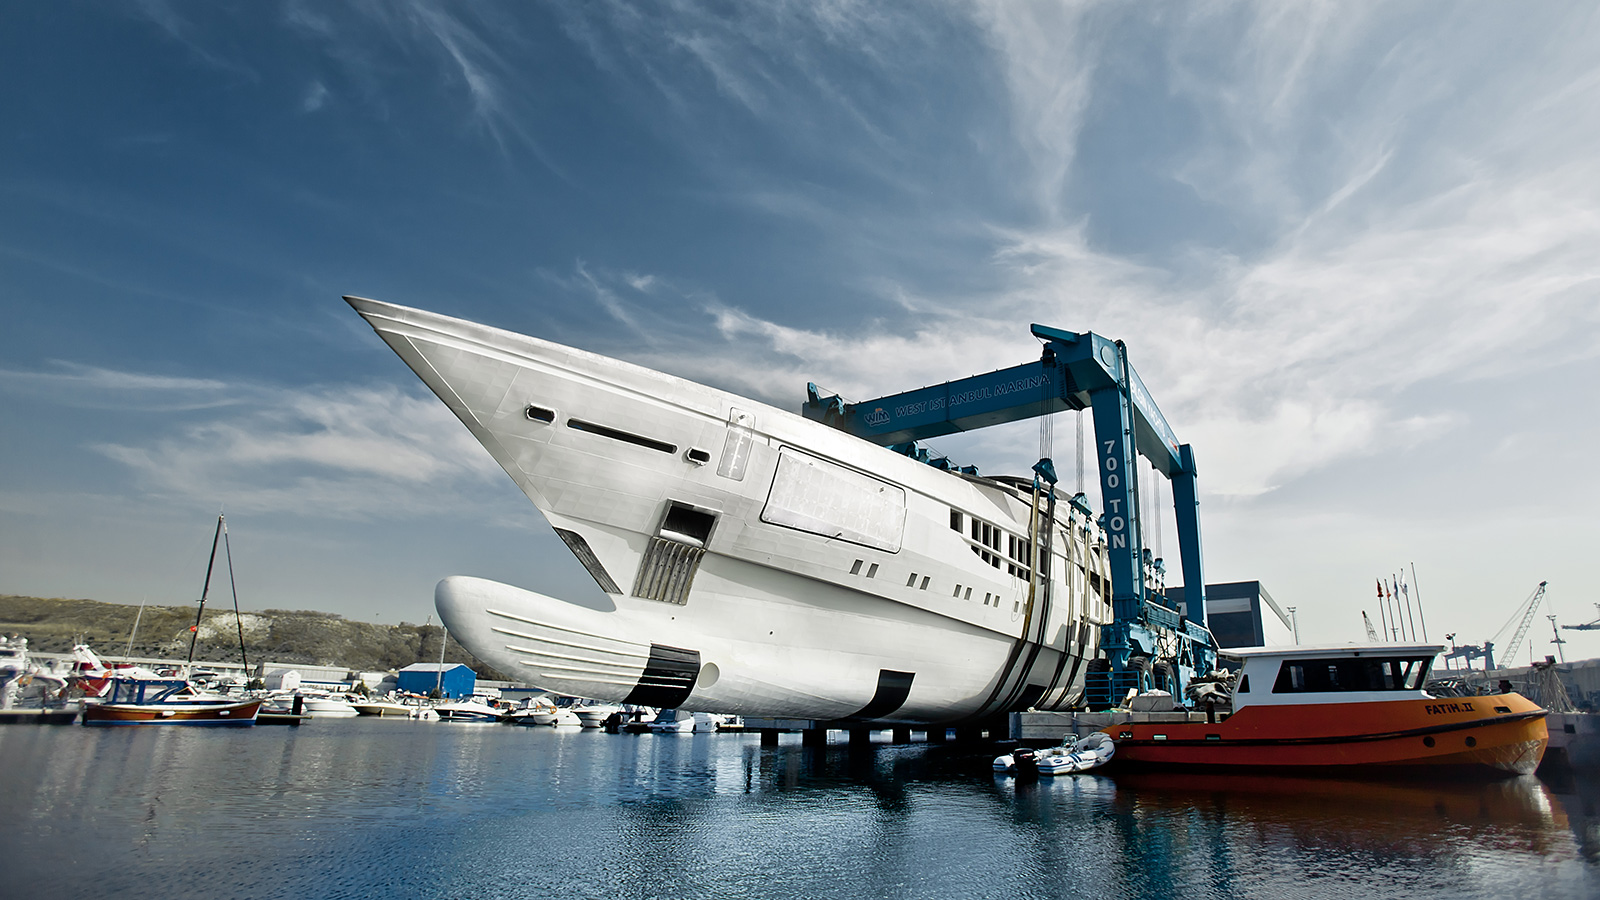 the-bilgin-263-was-hauled-out-in-west-istanbul-marina-for-fit-out